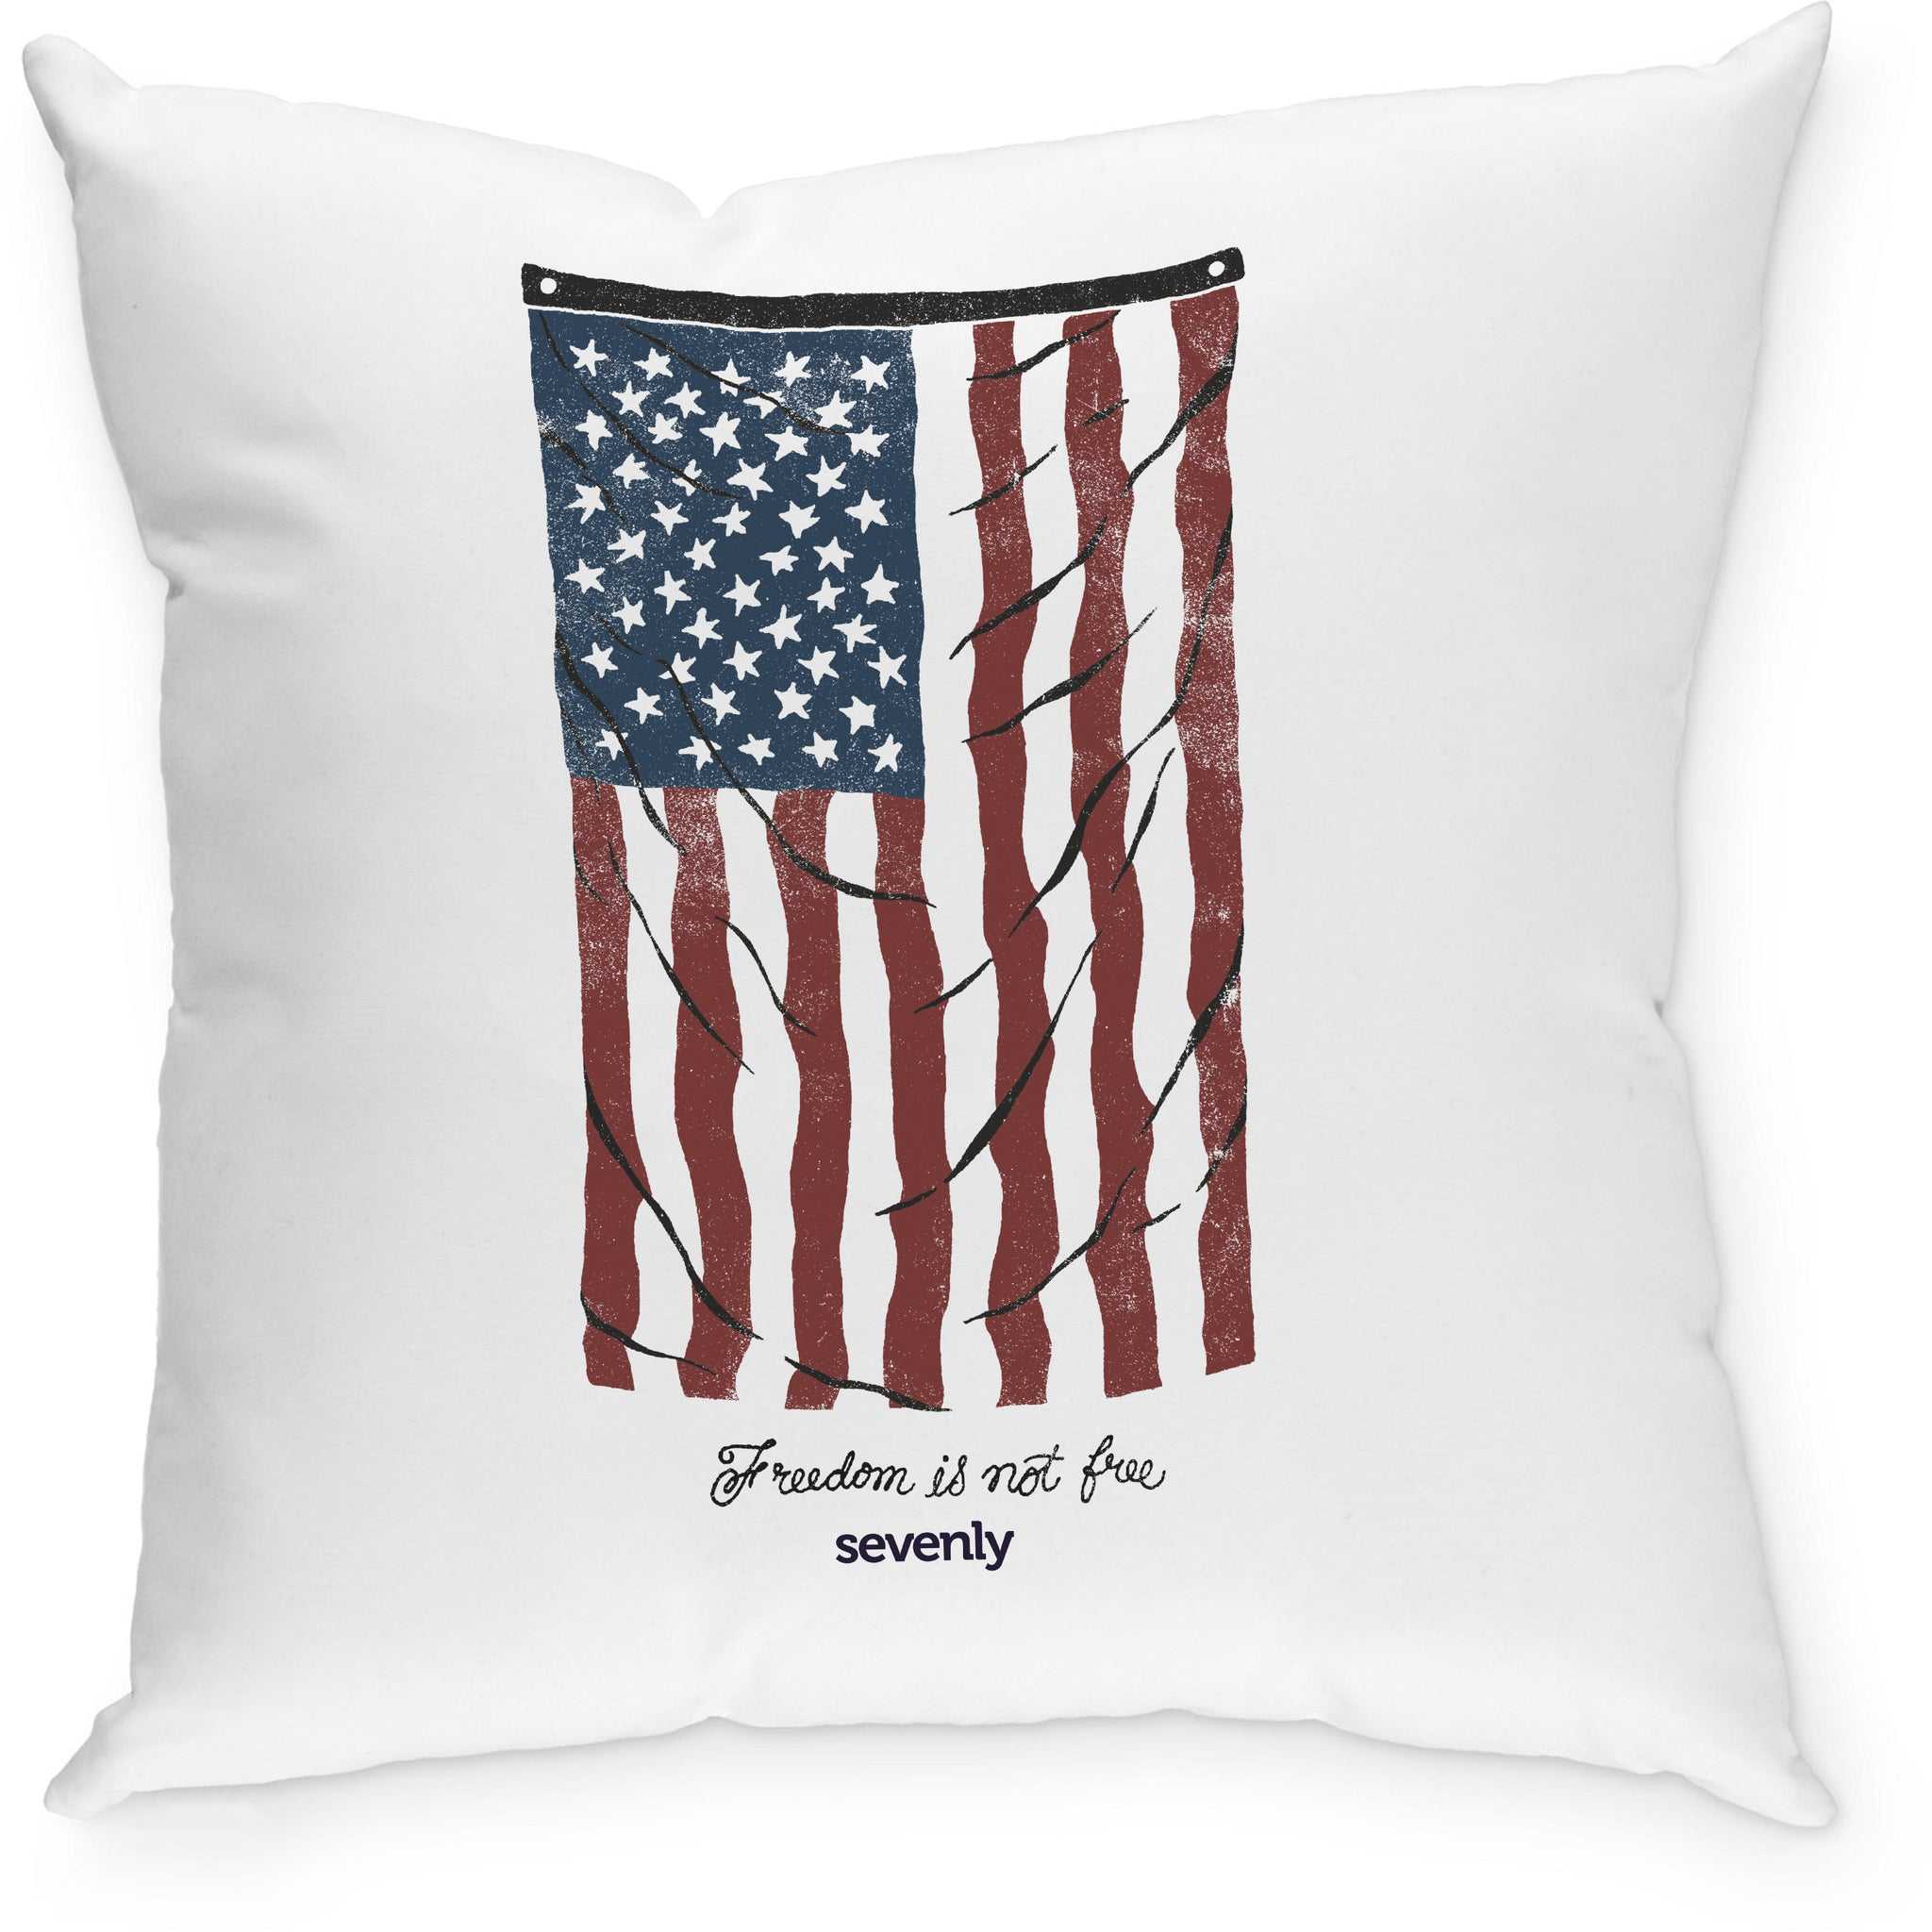 SEVENLY HOME GOODS - COTTON CANVAS THROW PILLOW - VINTAGE FLAG